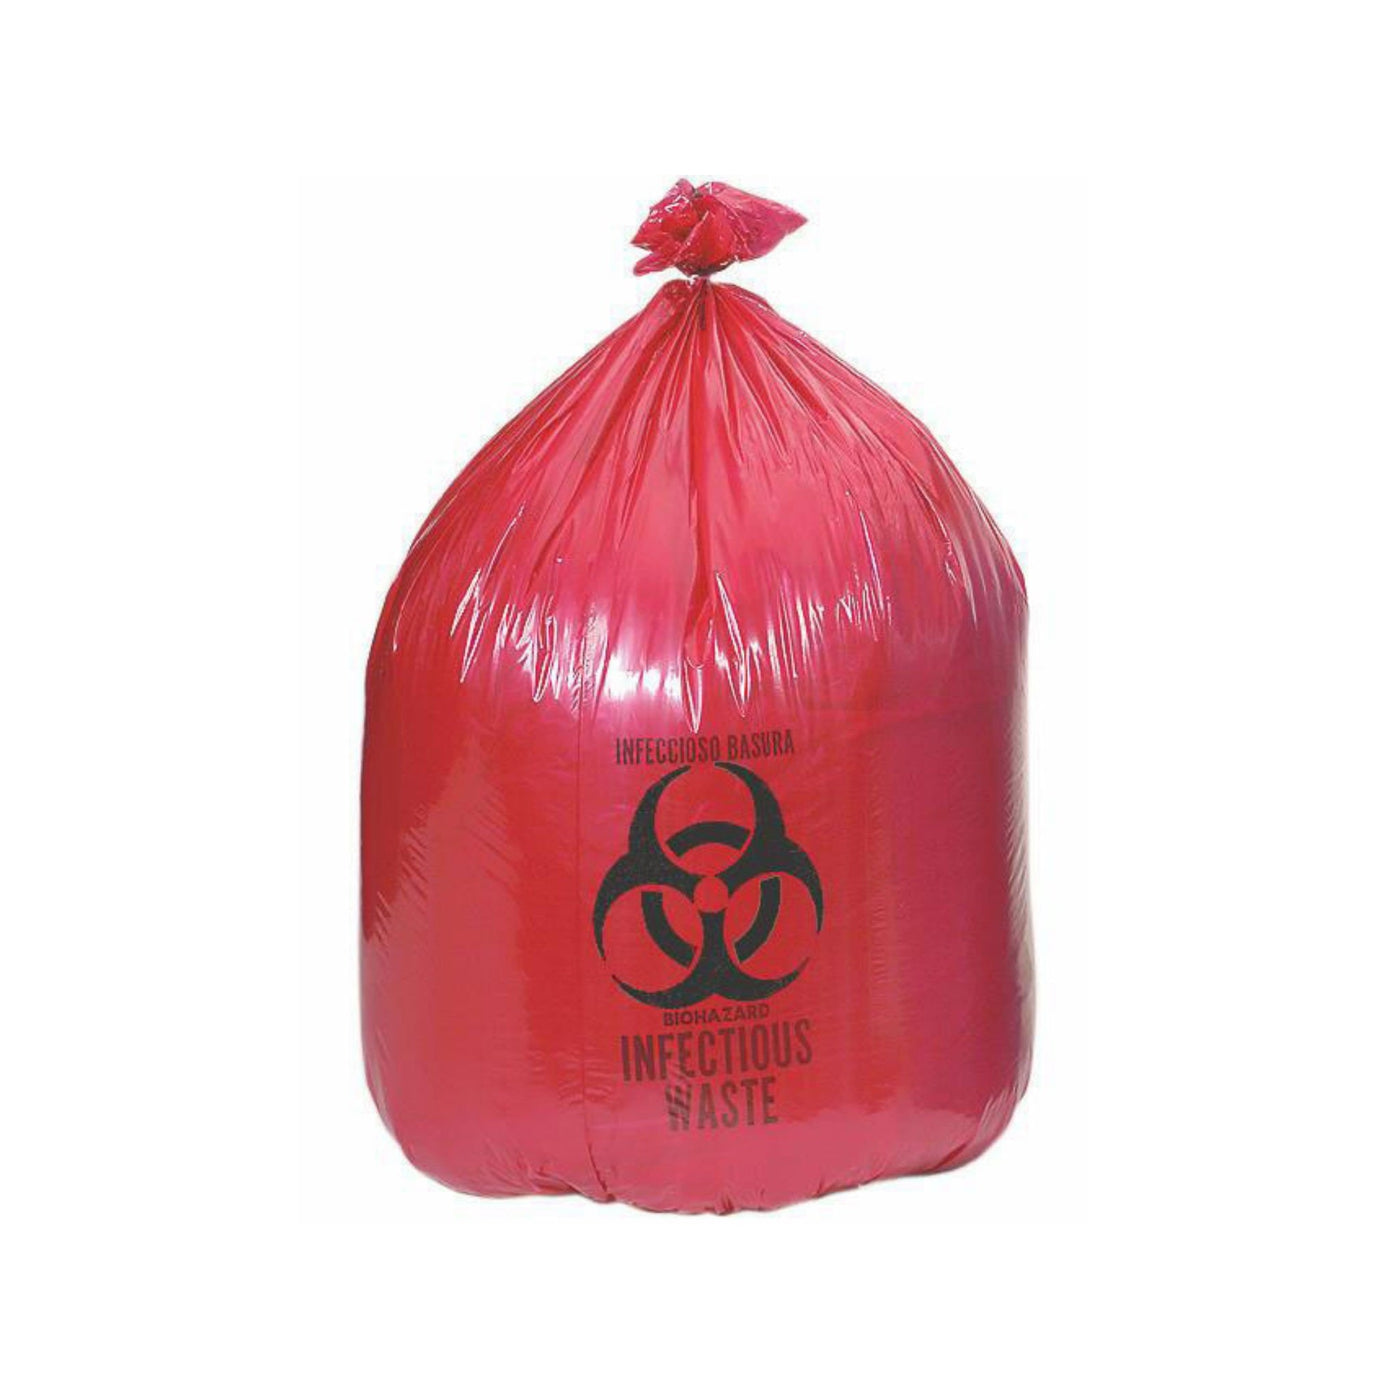 Red Infectious Waste Liners-Laboratory Accessory-Mortech Manufacturing Company Inc. Quality Stainless Steel Autopsy, Morgue, Funeral Home, Necropsy, Veterinary / Anatomy, Dissection Equipment and Accessories